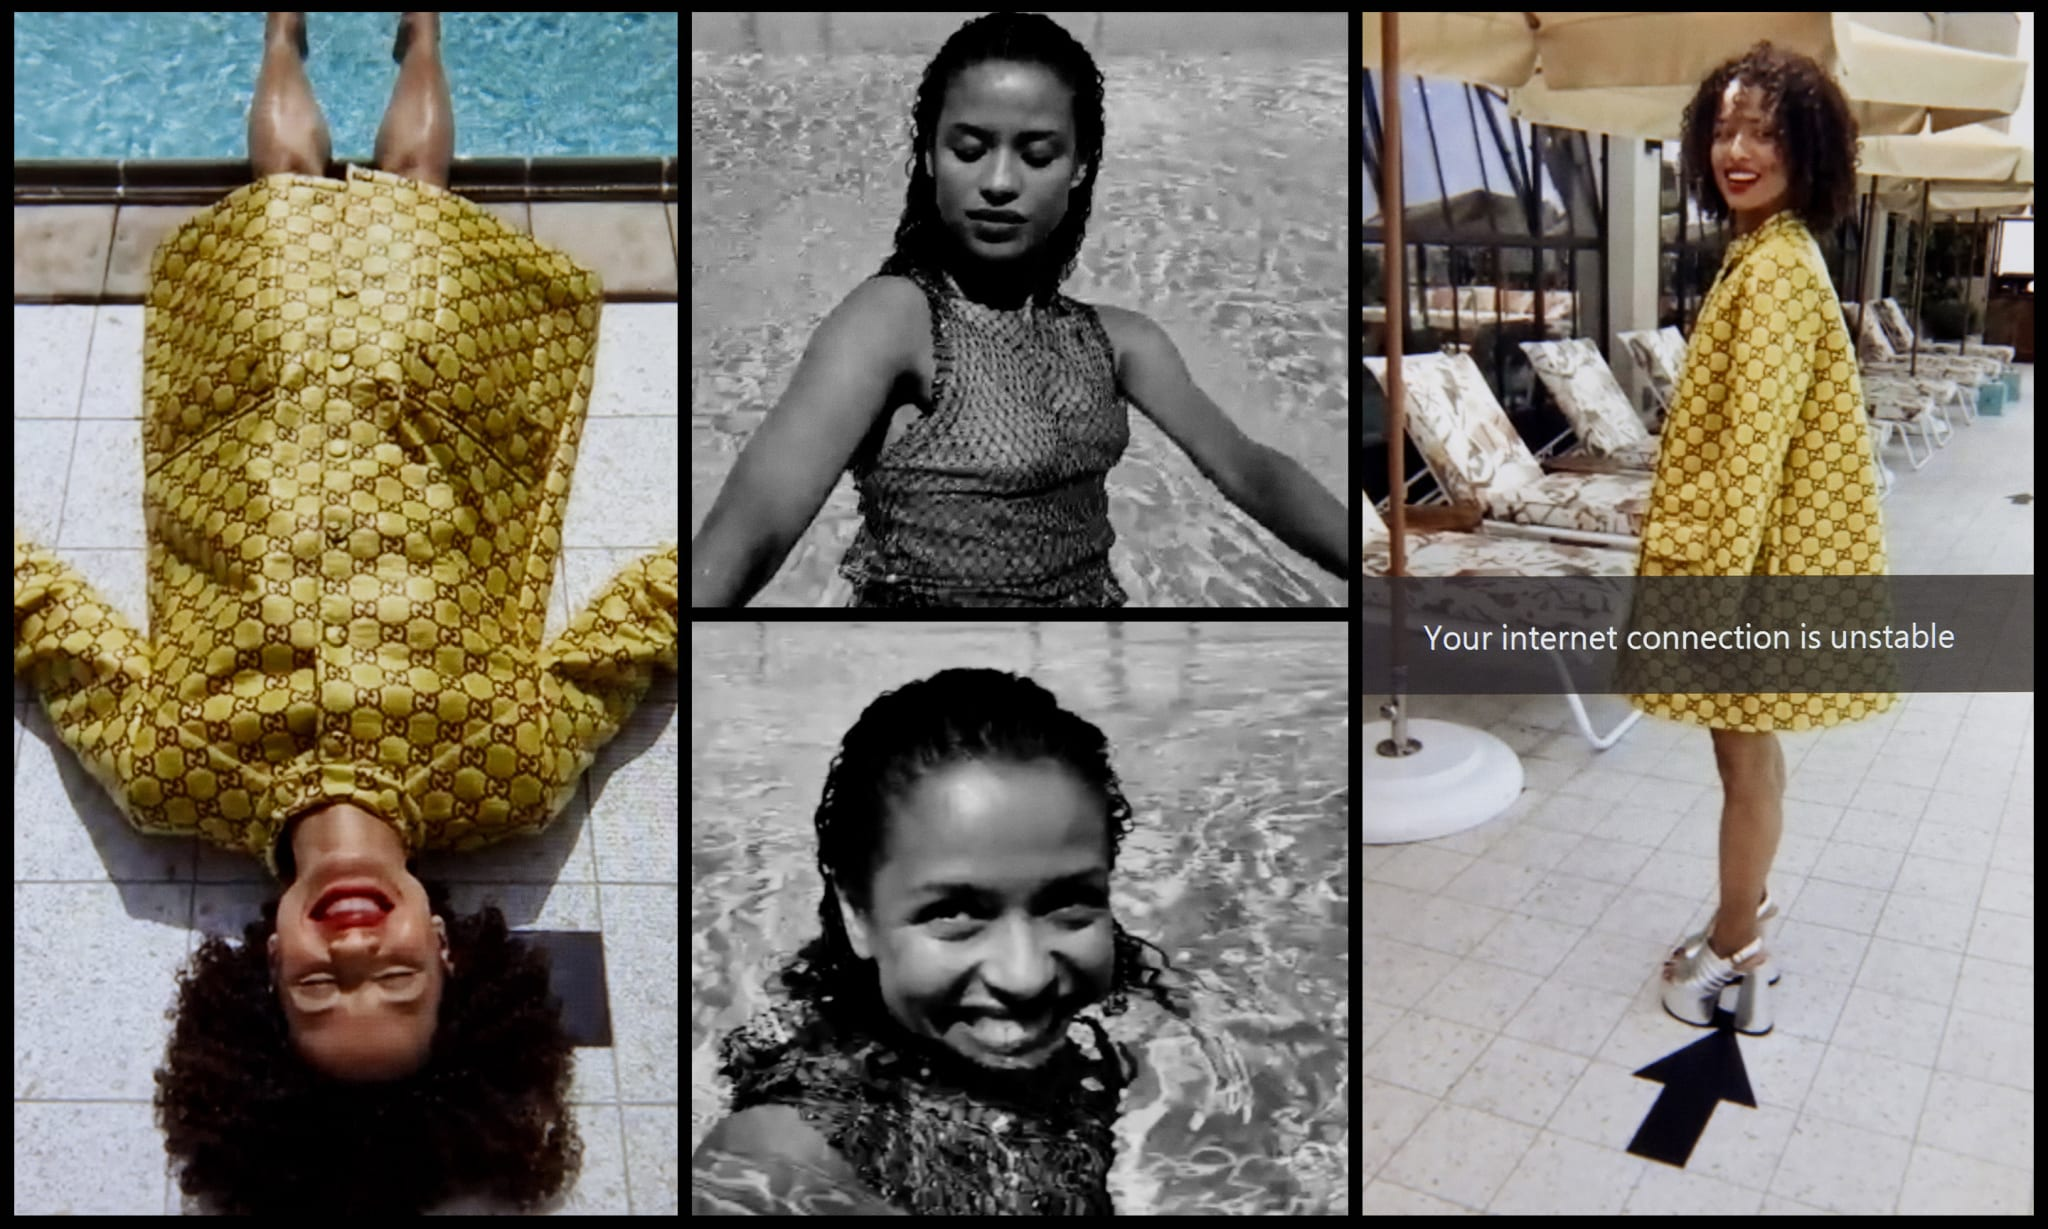 A collage of a woman wearing different outfits in and around a swimming pool.